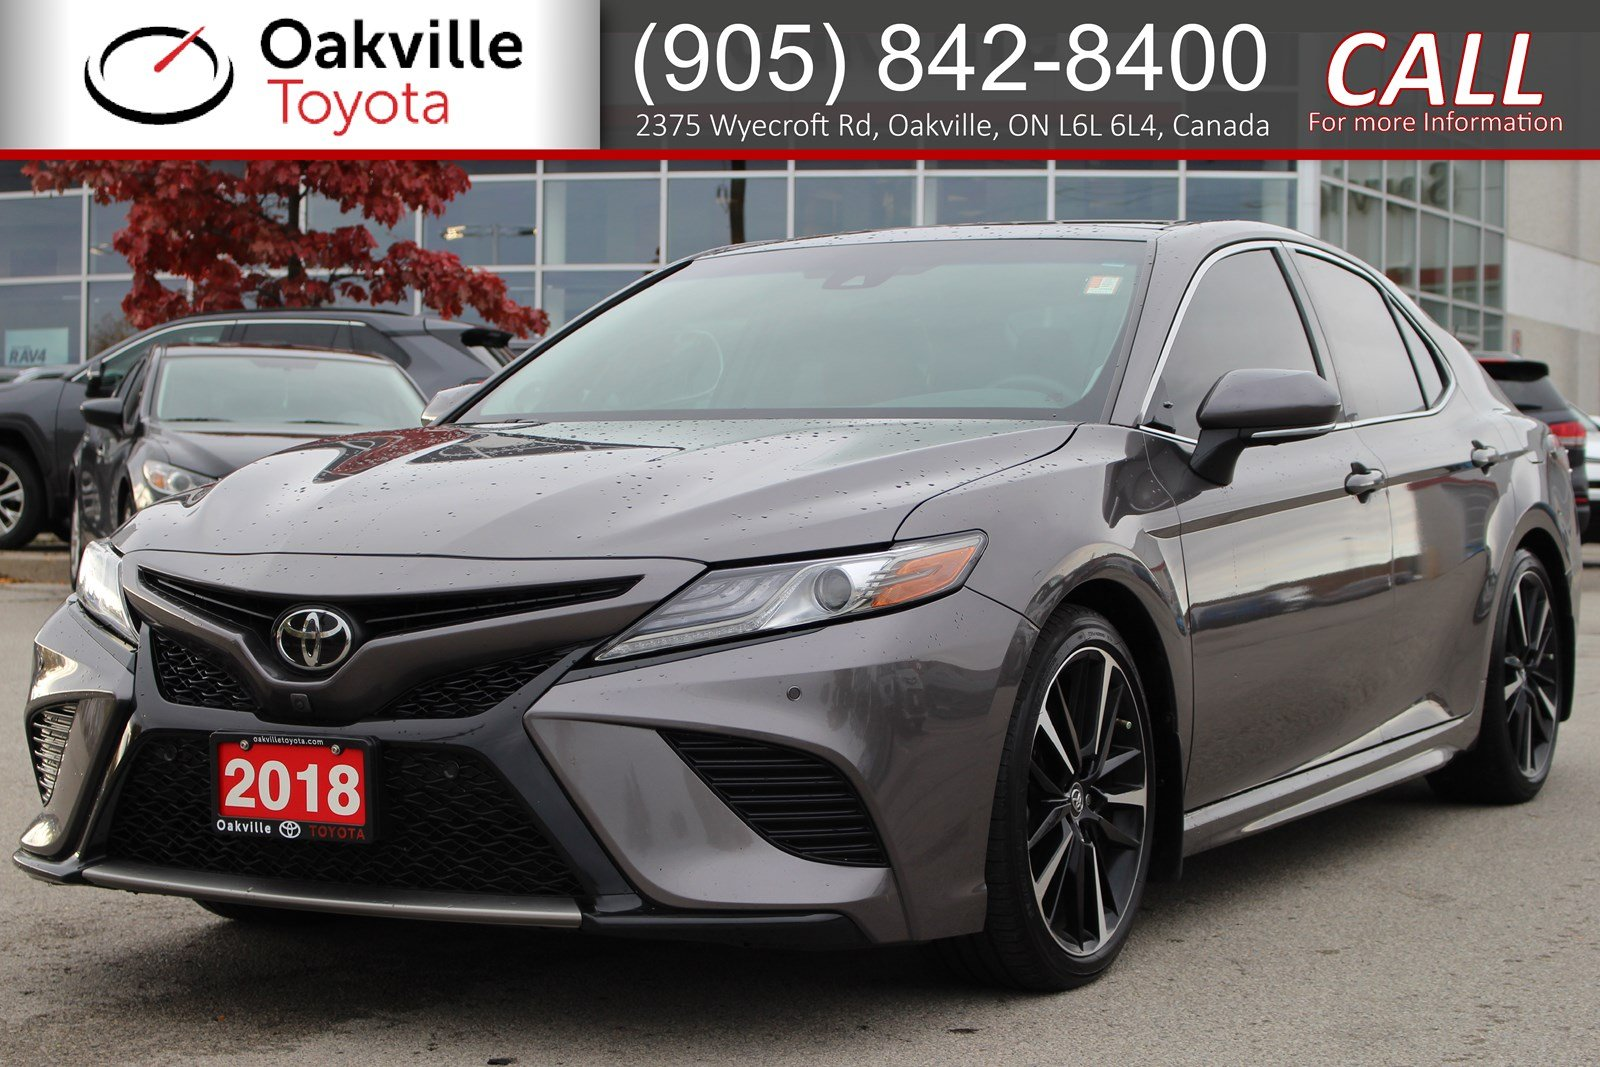 2018 Toyota Camry Xse V6 >> Pre Owned 2018 Toyota Camry Xse V6 With Clean Carfax And One Owner Fwd 4dr Car